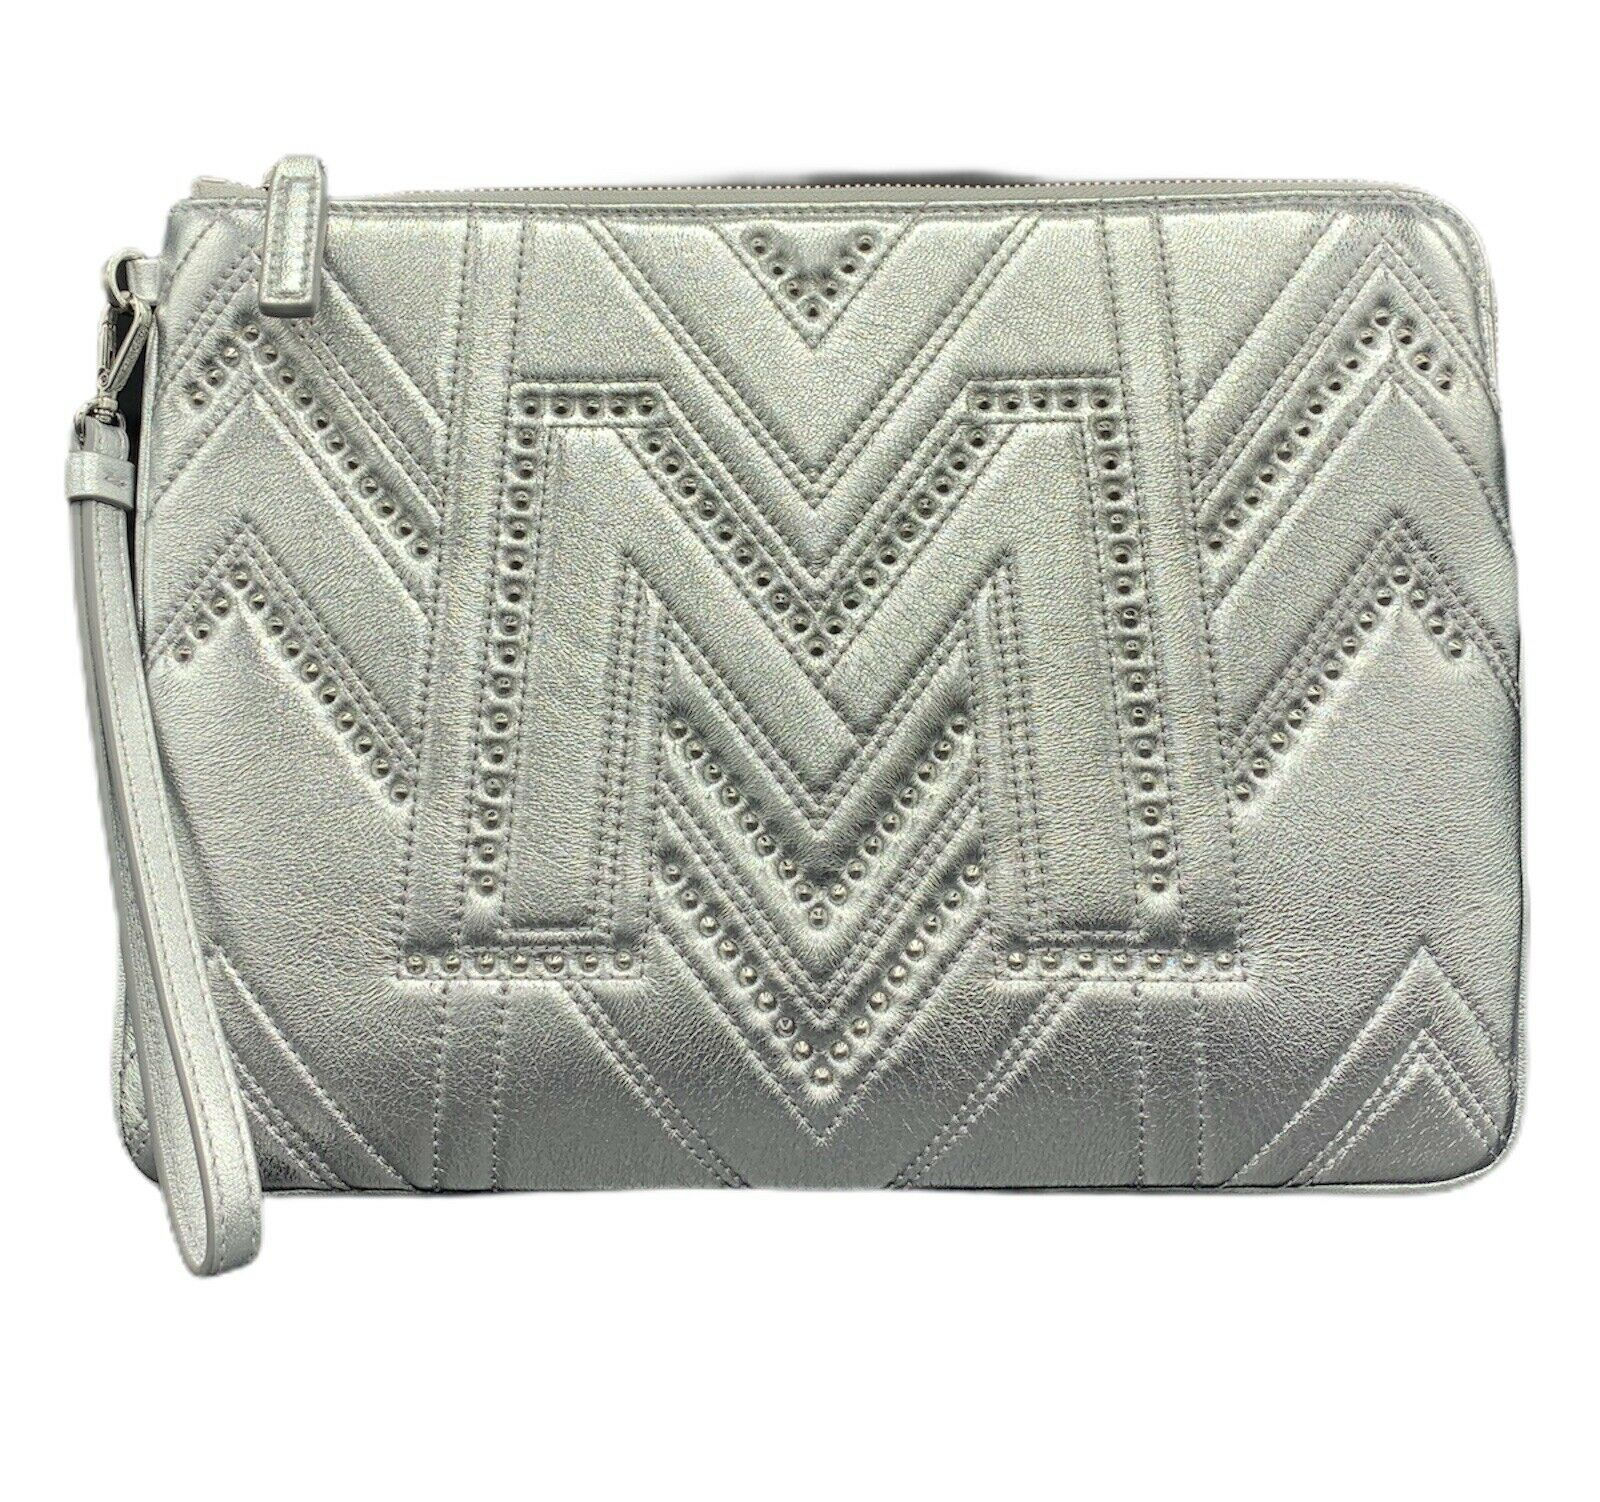 MCM LOGO QUILTED BERLIN SILVER LEATHER MEDIUM PURSE WRISTLET POUCH